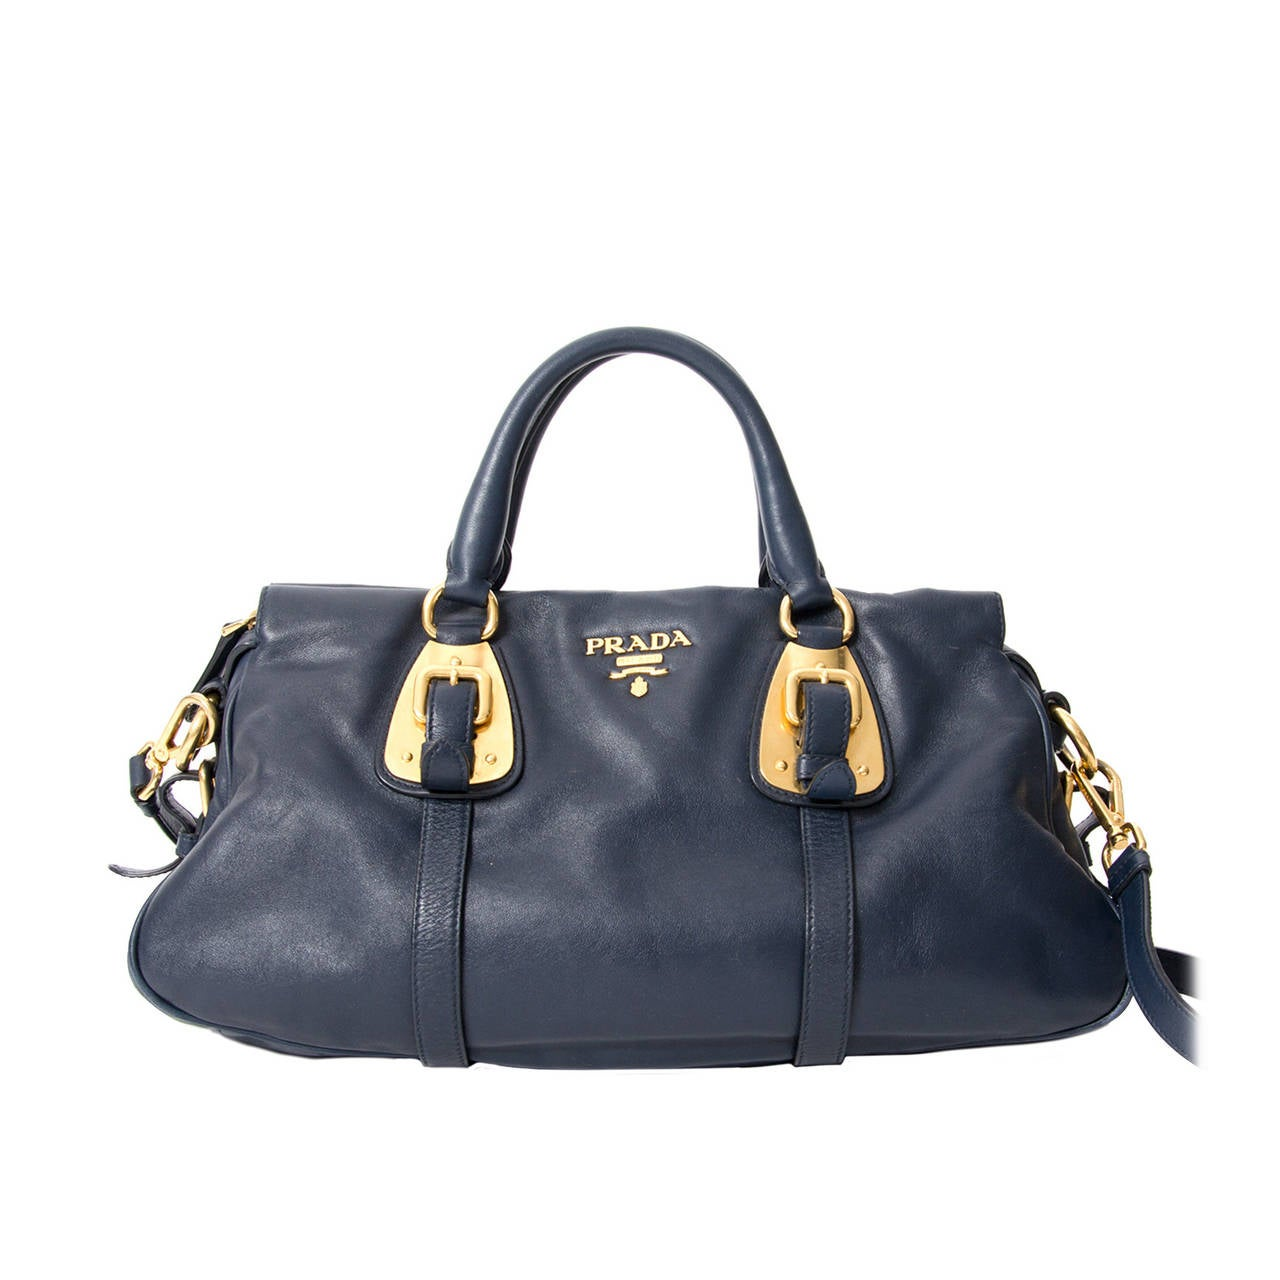 71f4666ba1a5 Prada Bag Gold Buckle   Stanford Center for Opportunity Policy in ...